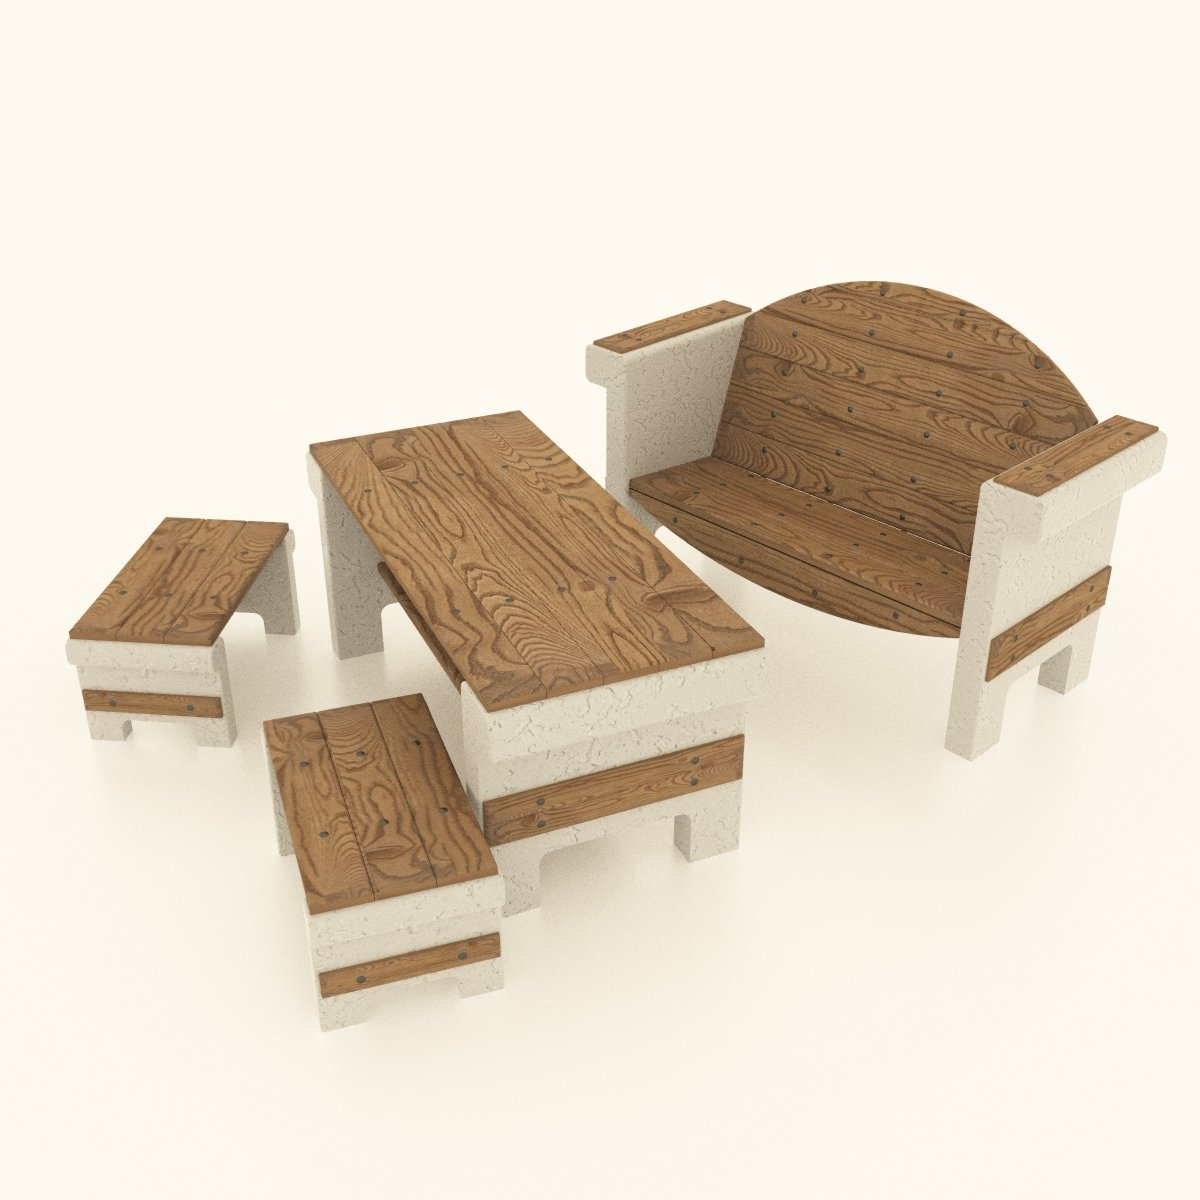 set of garden furniture made of concrete and wood 3d model